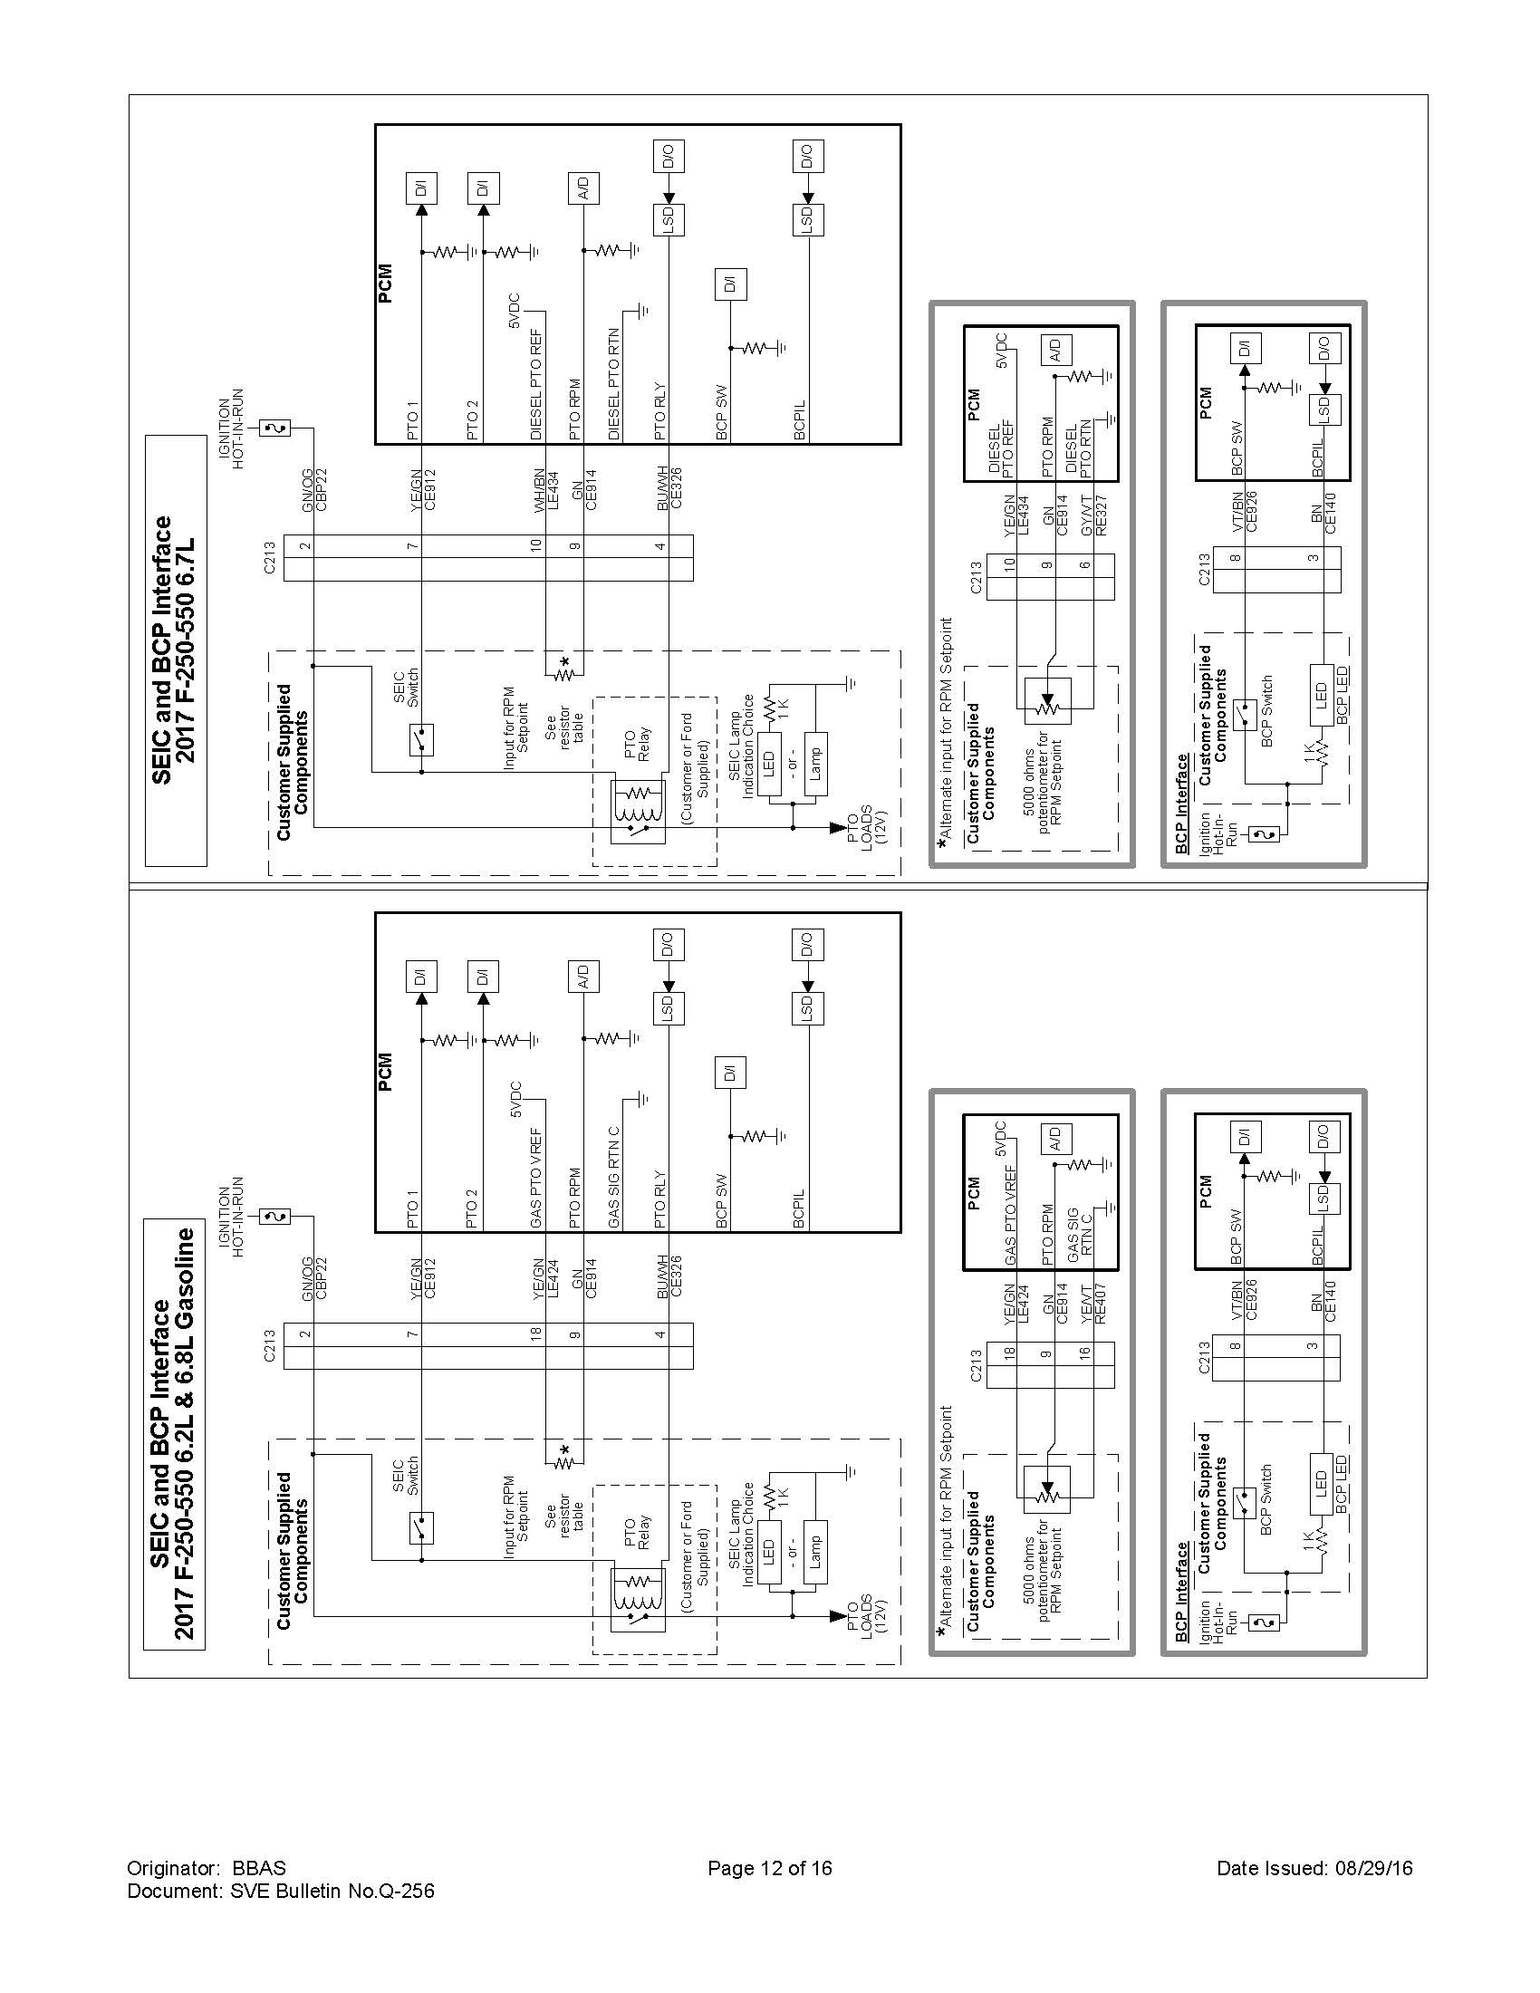 2002 Ford F550 Pto Wiring Diagram. Ford. Auto Wiring Diagram